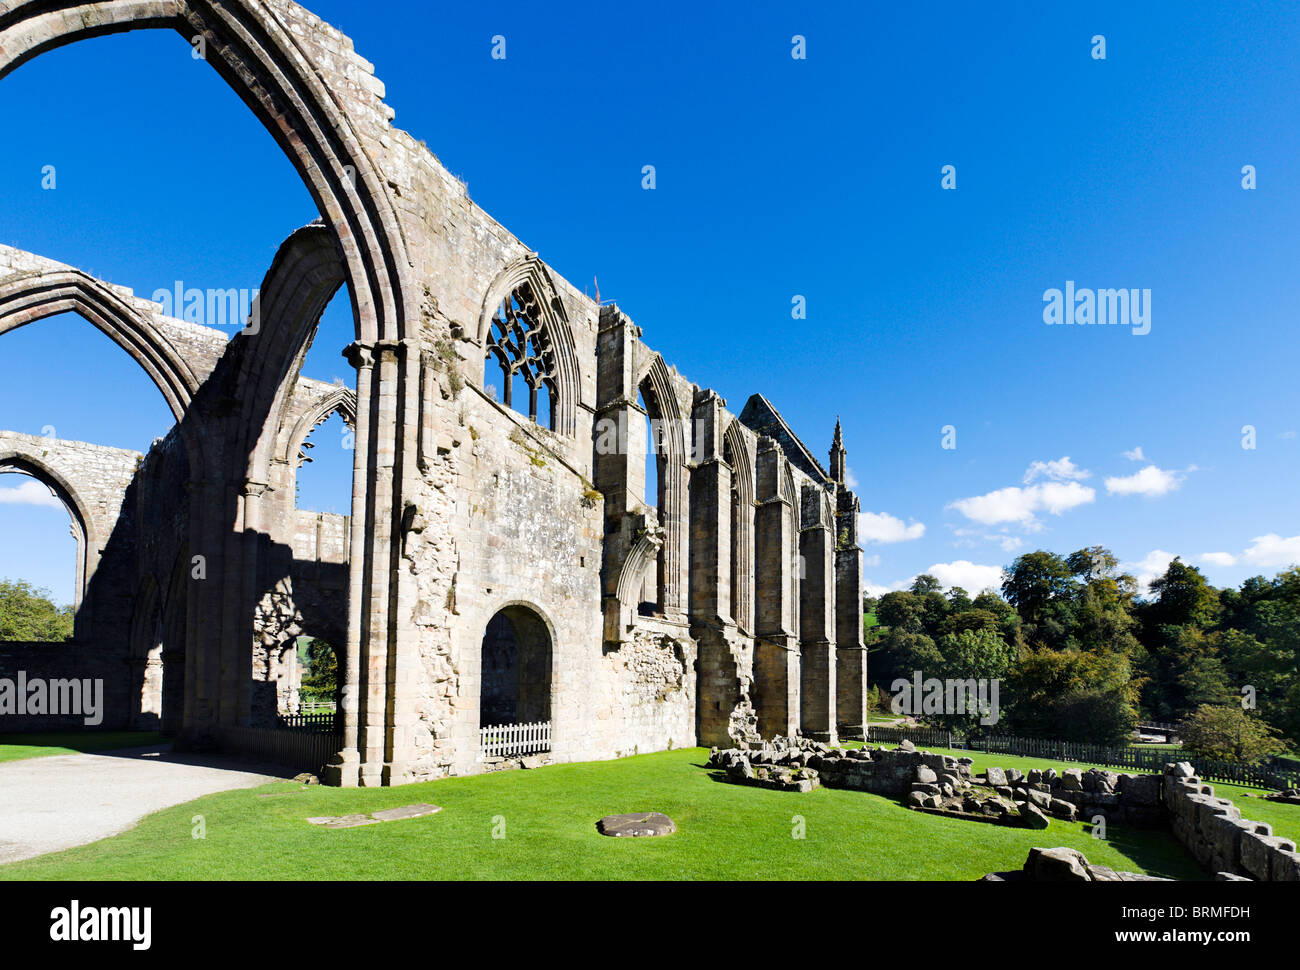 Bolton Priory, Bolton Abbey, Wharfedale, Yorkshire Dales, North Yorkshire, England, UK - Stock Image